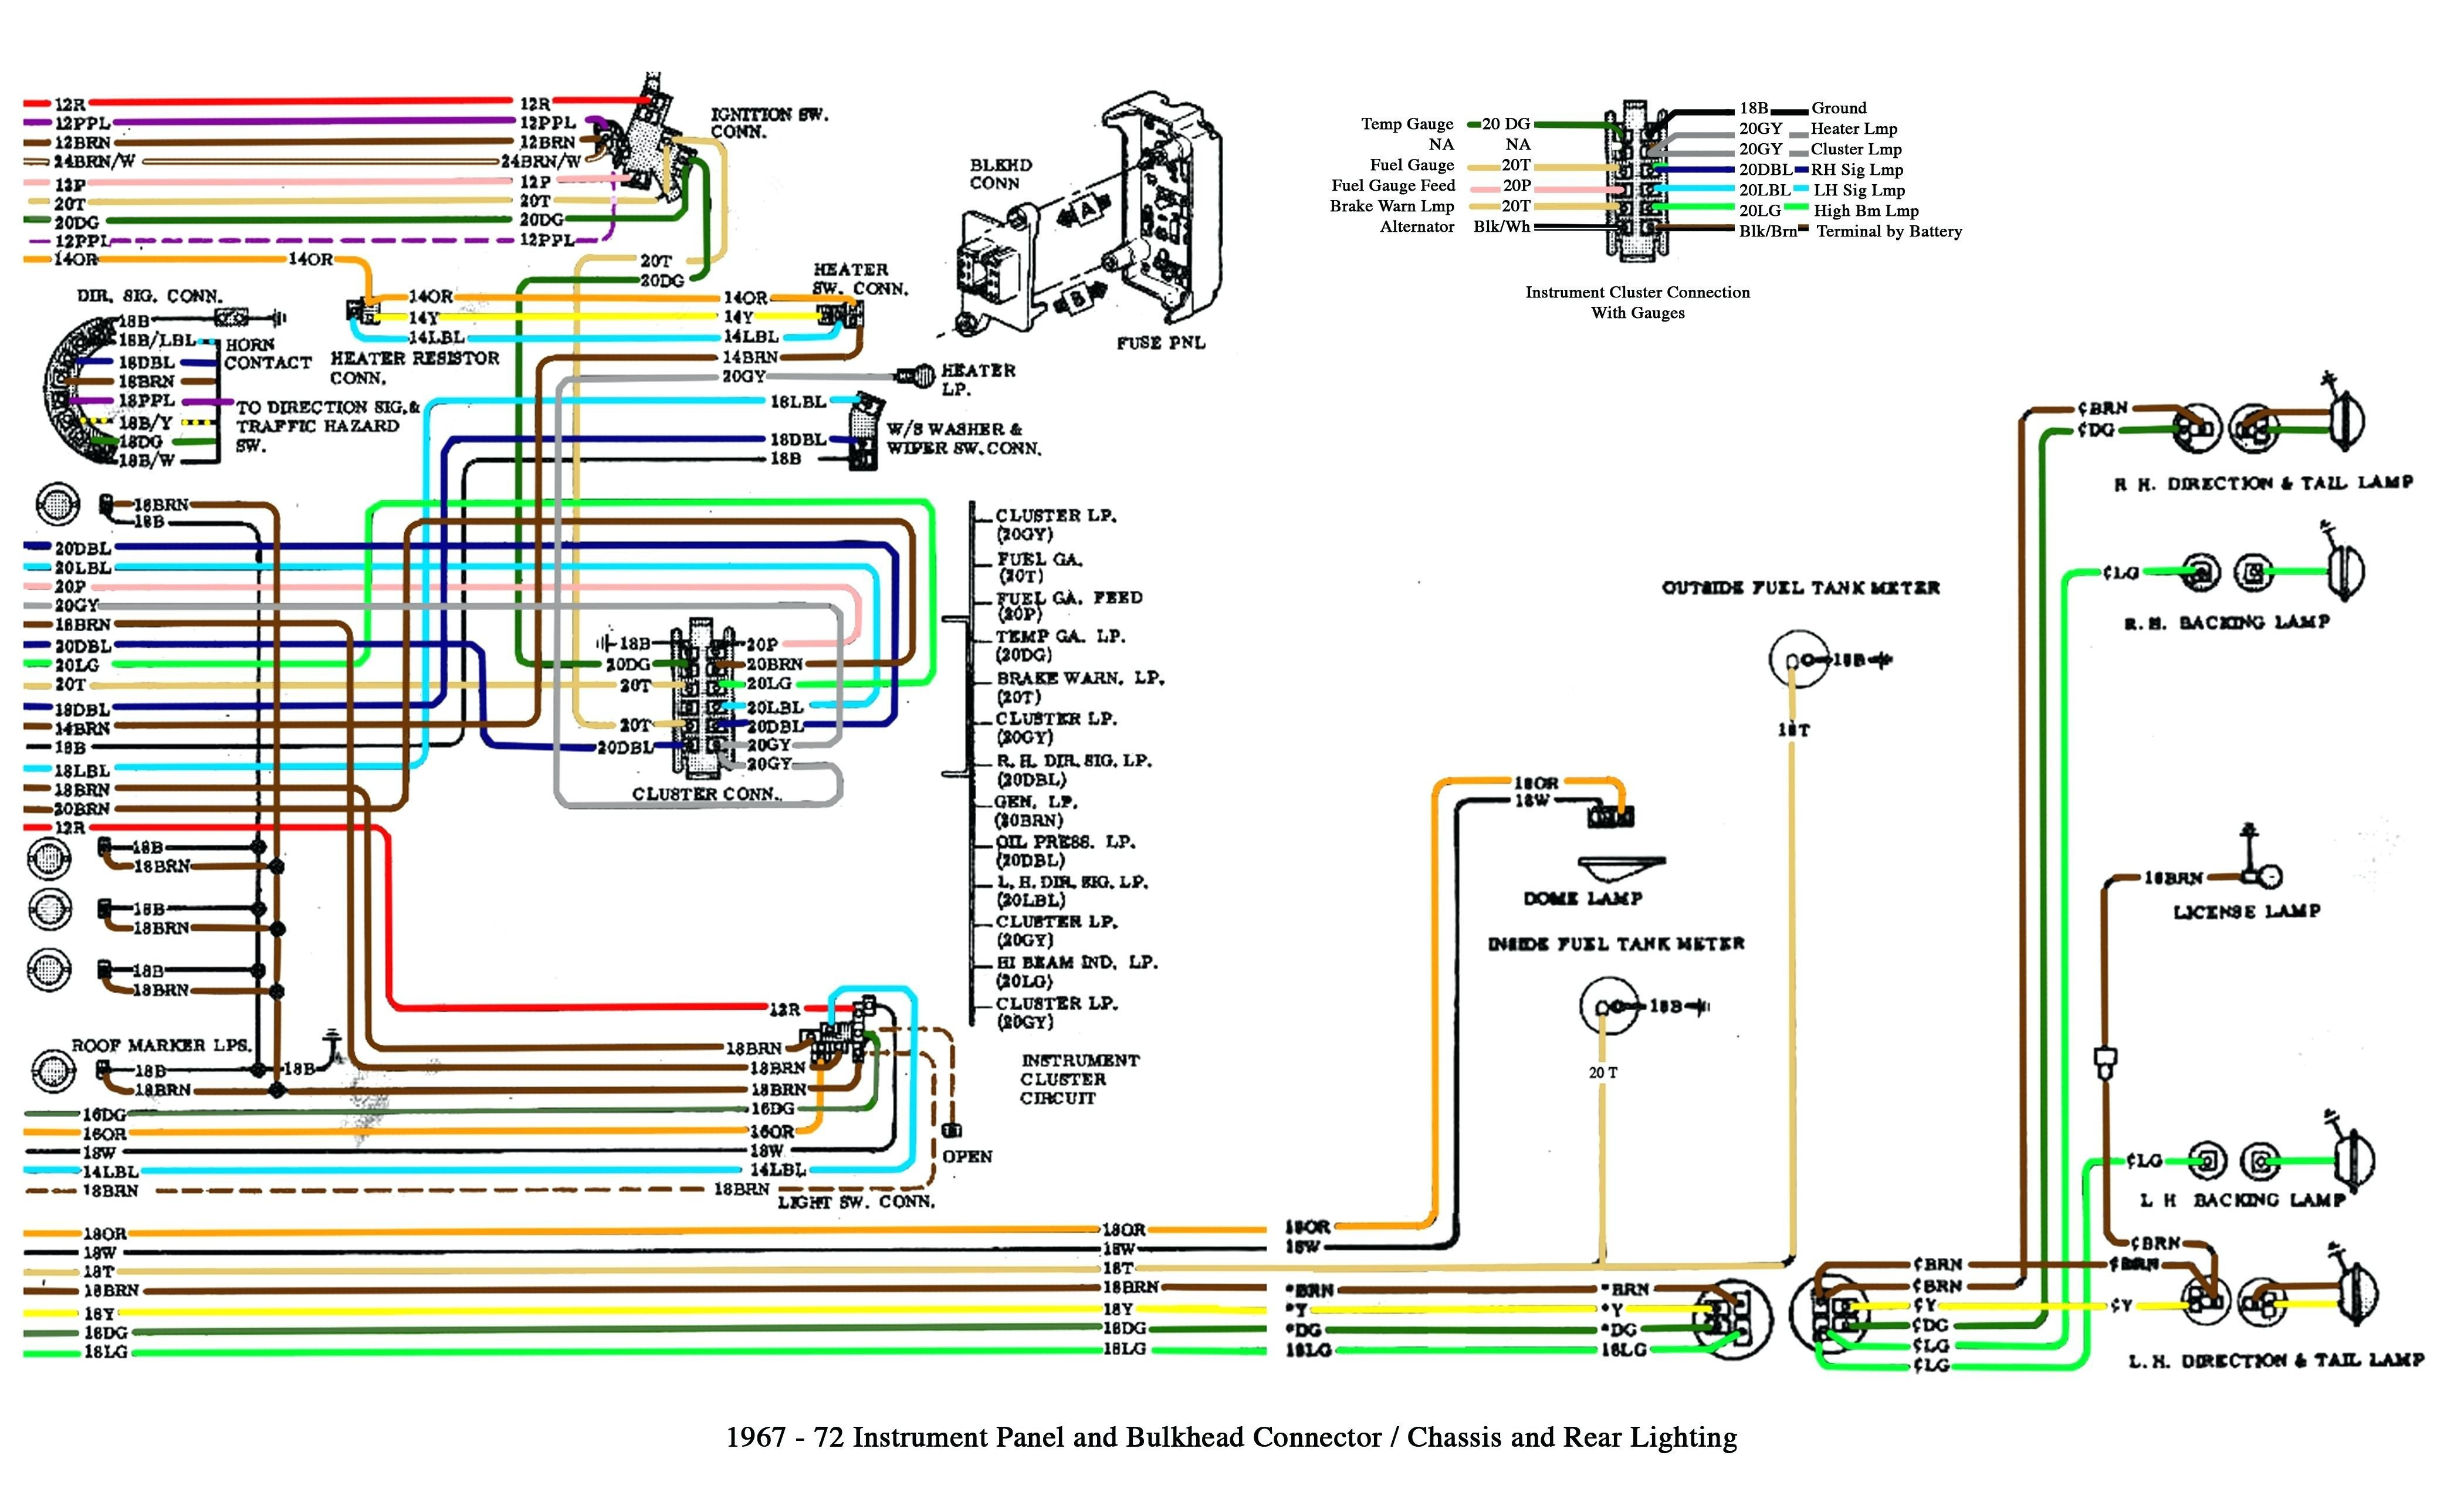 2010 Chevy Equinox Abs Wiring Diagram Worksheet And Impala Fuse Box Wire Center U2022 Rh 207 246 102 26 2006 Code P0420